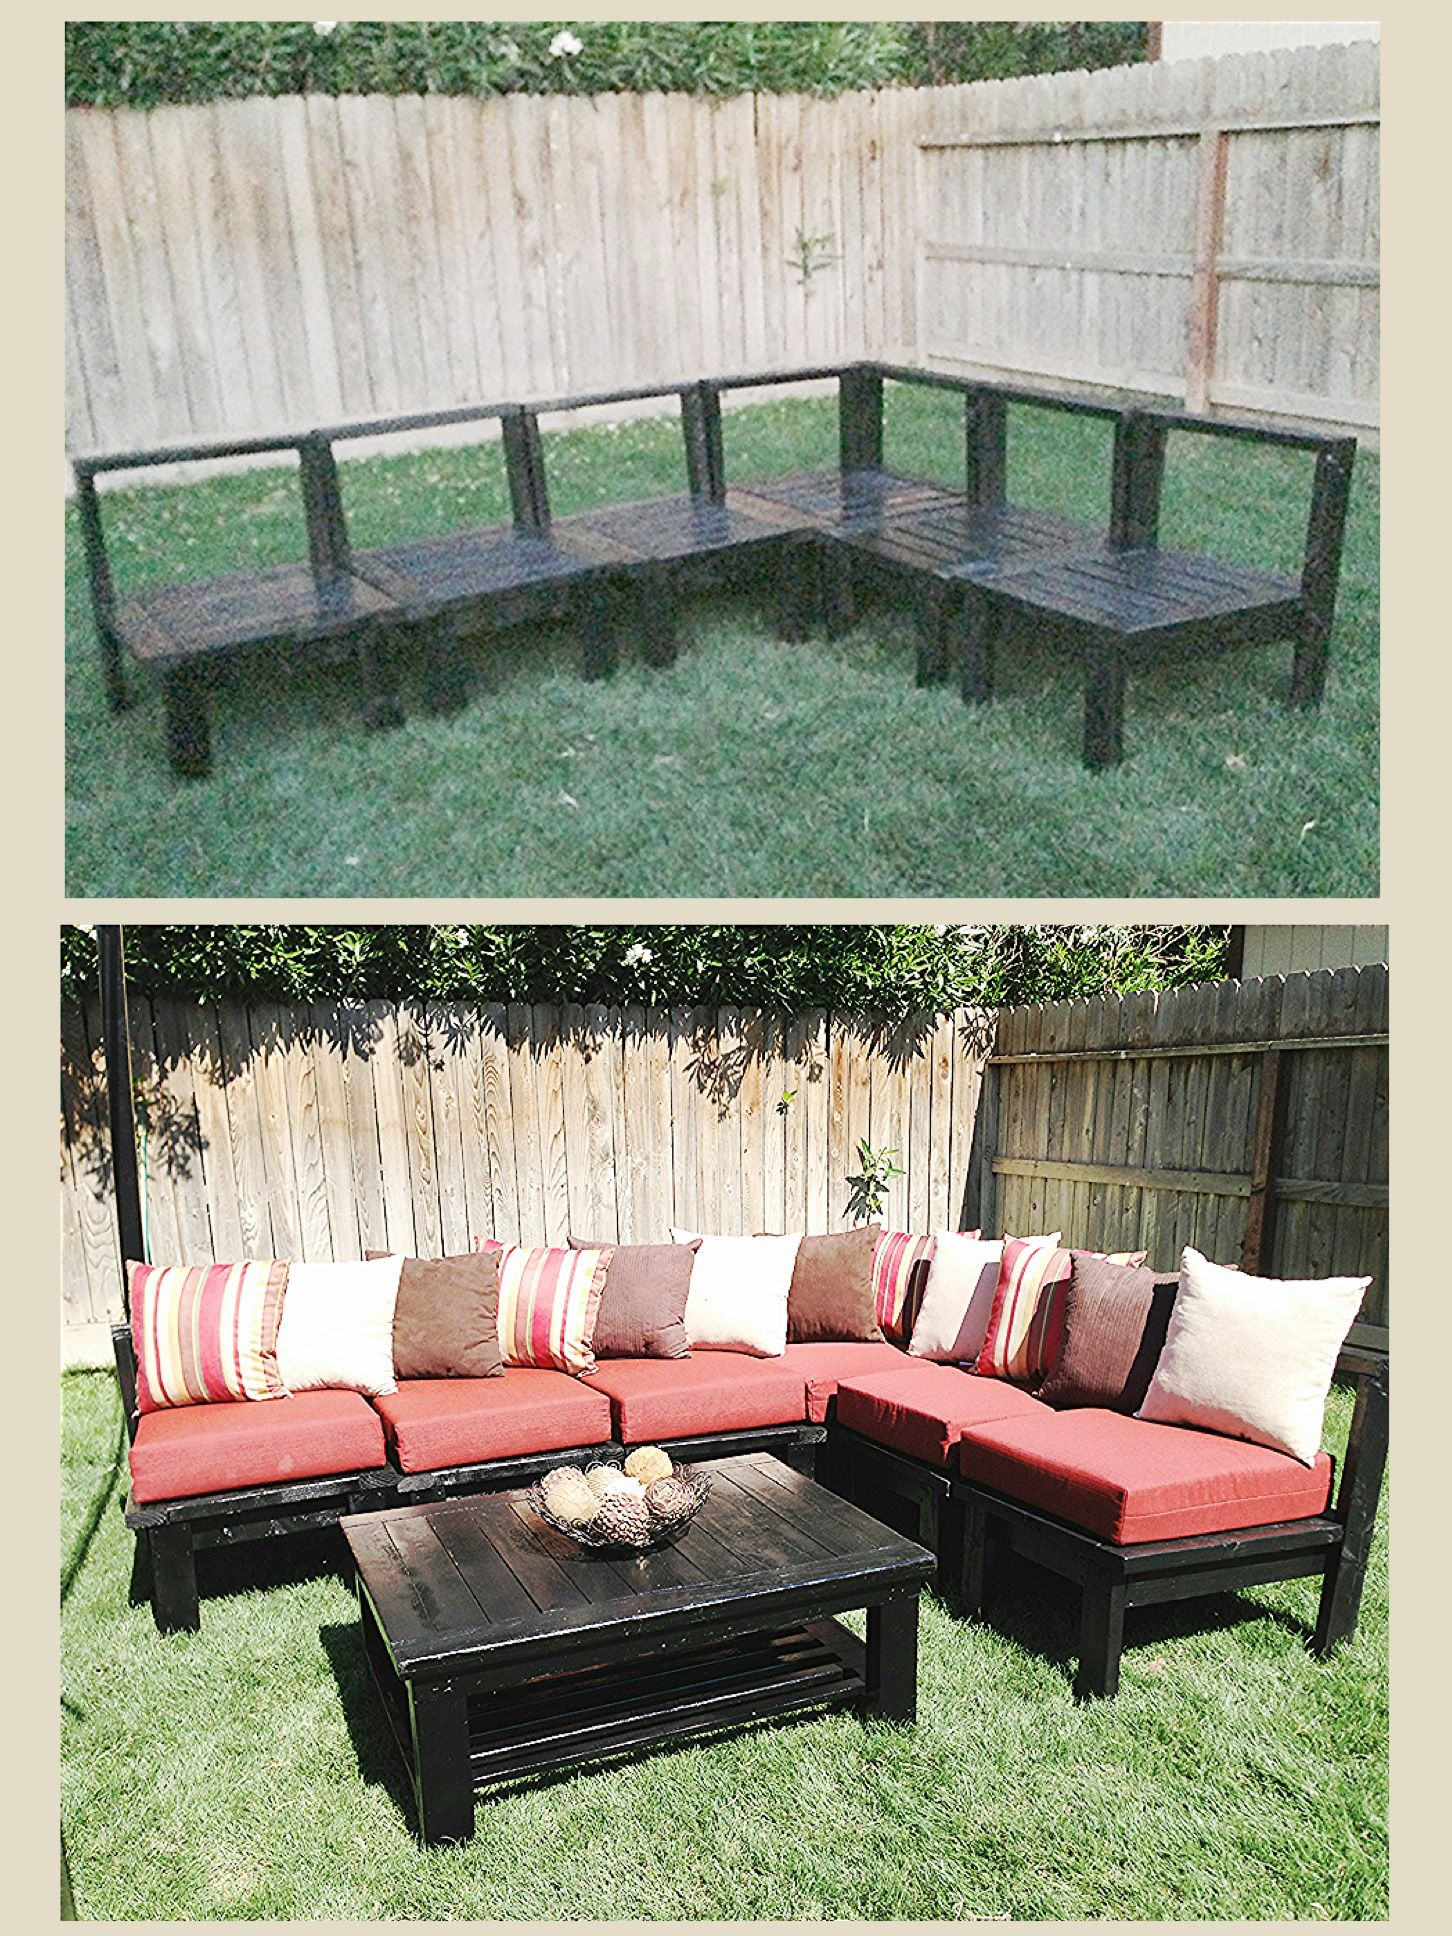 Plans To Build Outdoor Sectional Sofa Bestway Air Diy Patio Furniture My Husband Made This